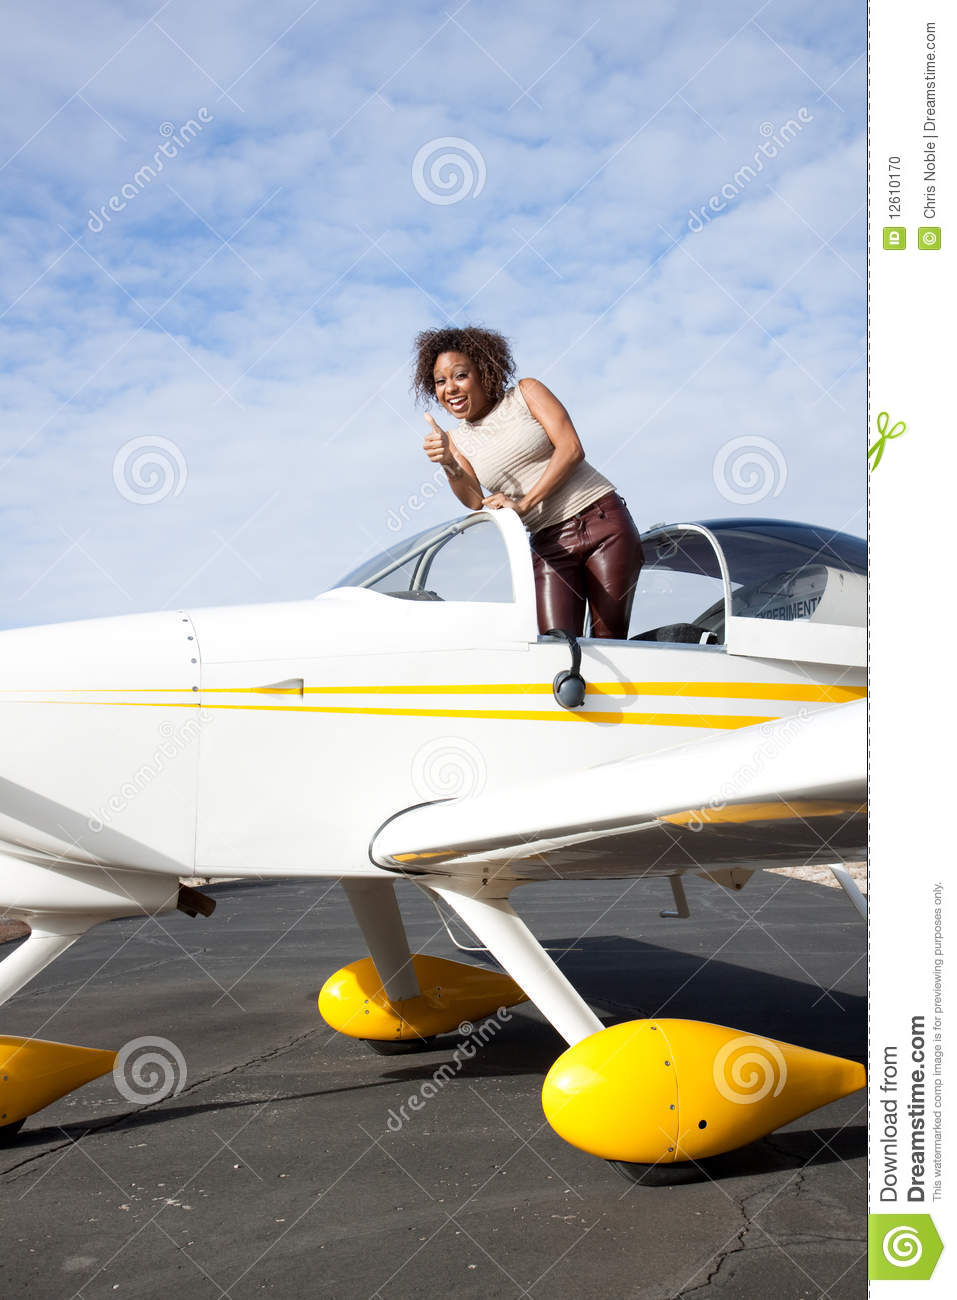 African American Woman Flying A Private Plane Stock Photo ...